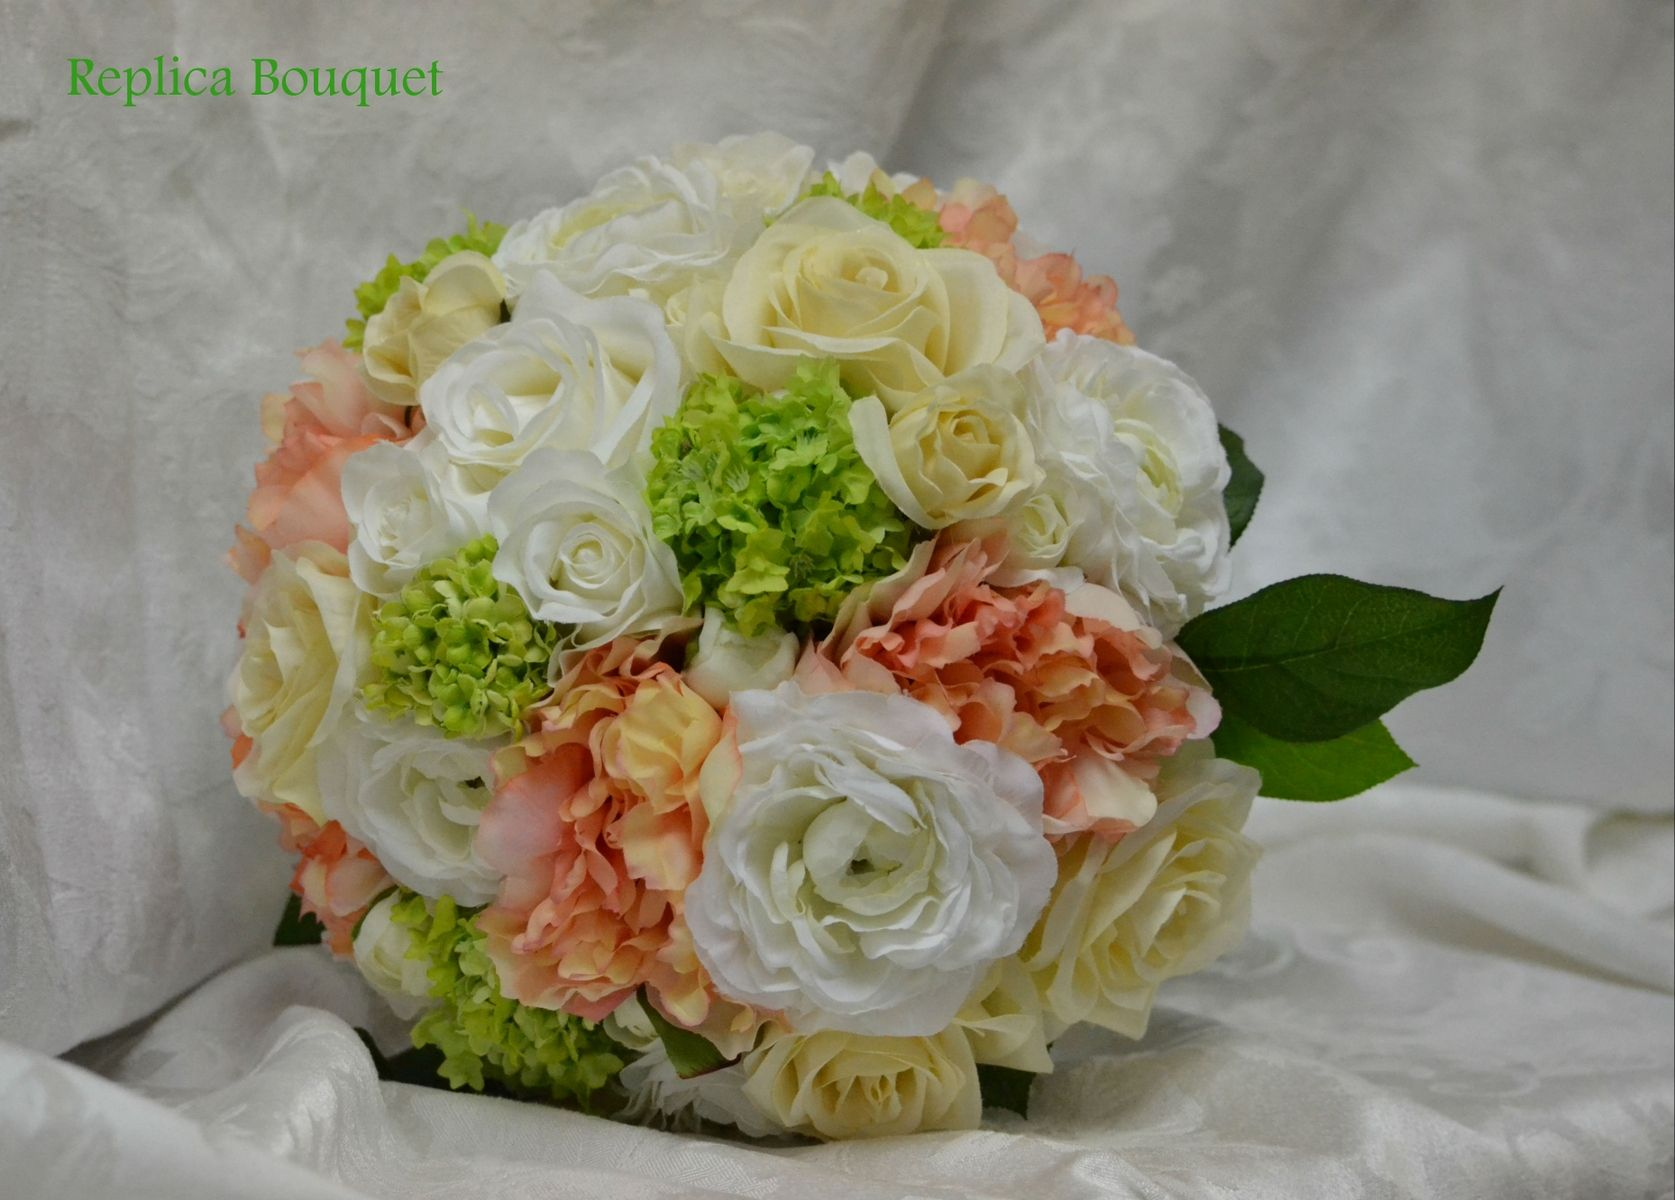 Custom bridal bouquet replica by duchess florals custommade custom made bridal bouquet replica solutioingenieria Images